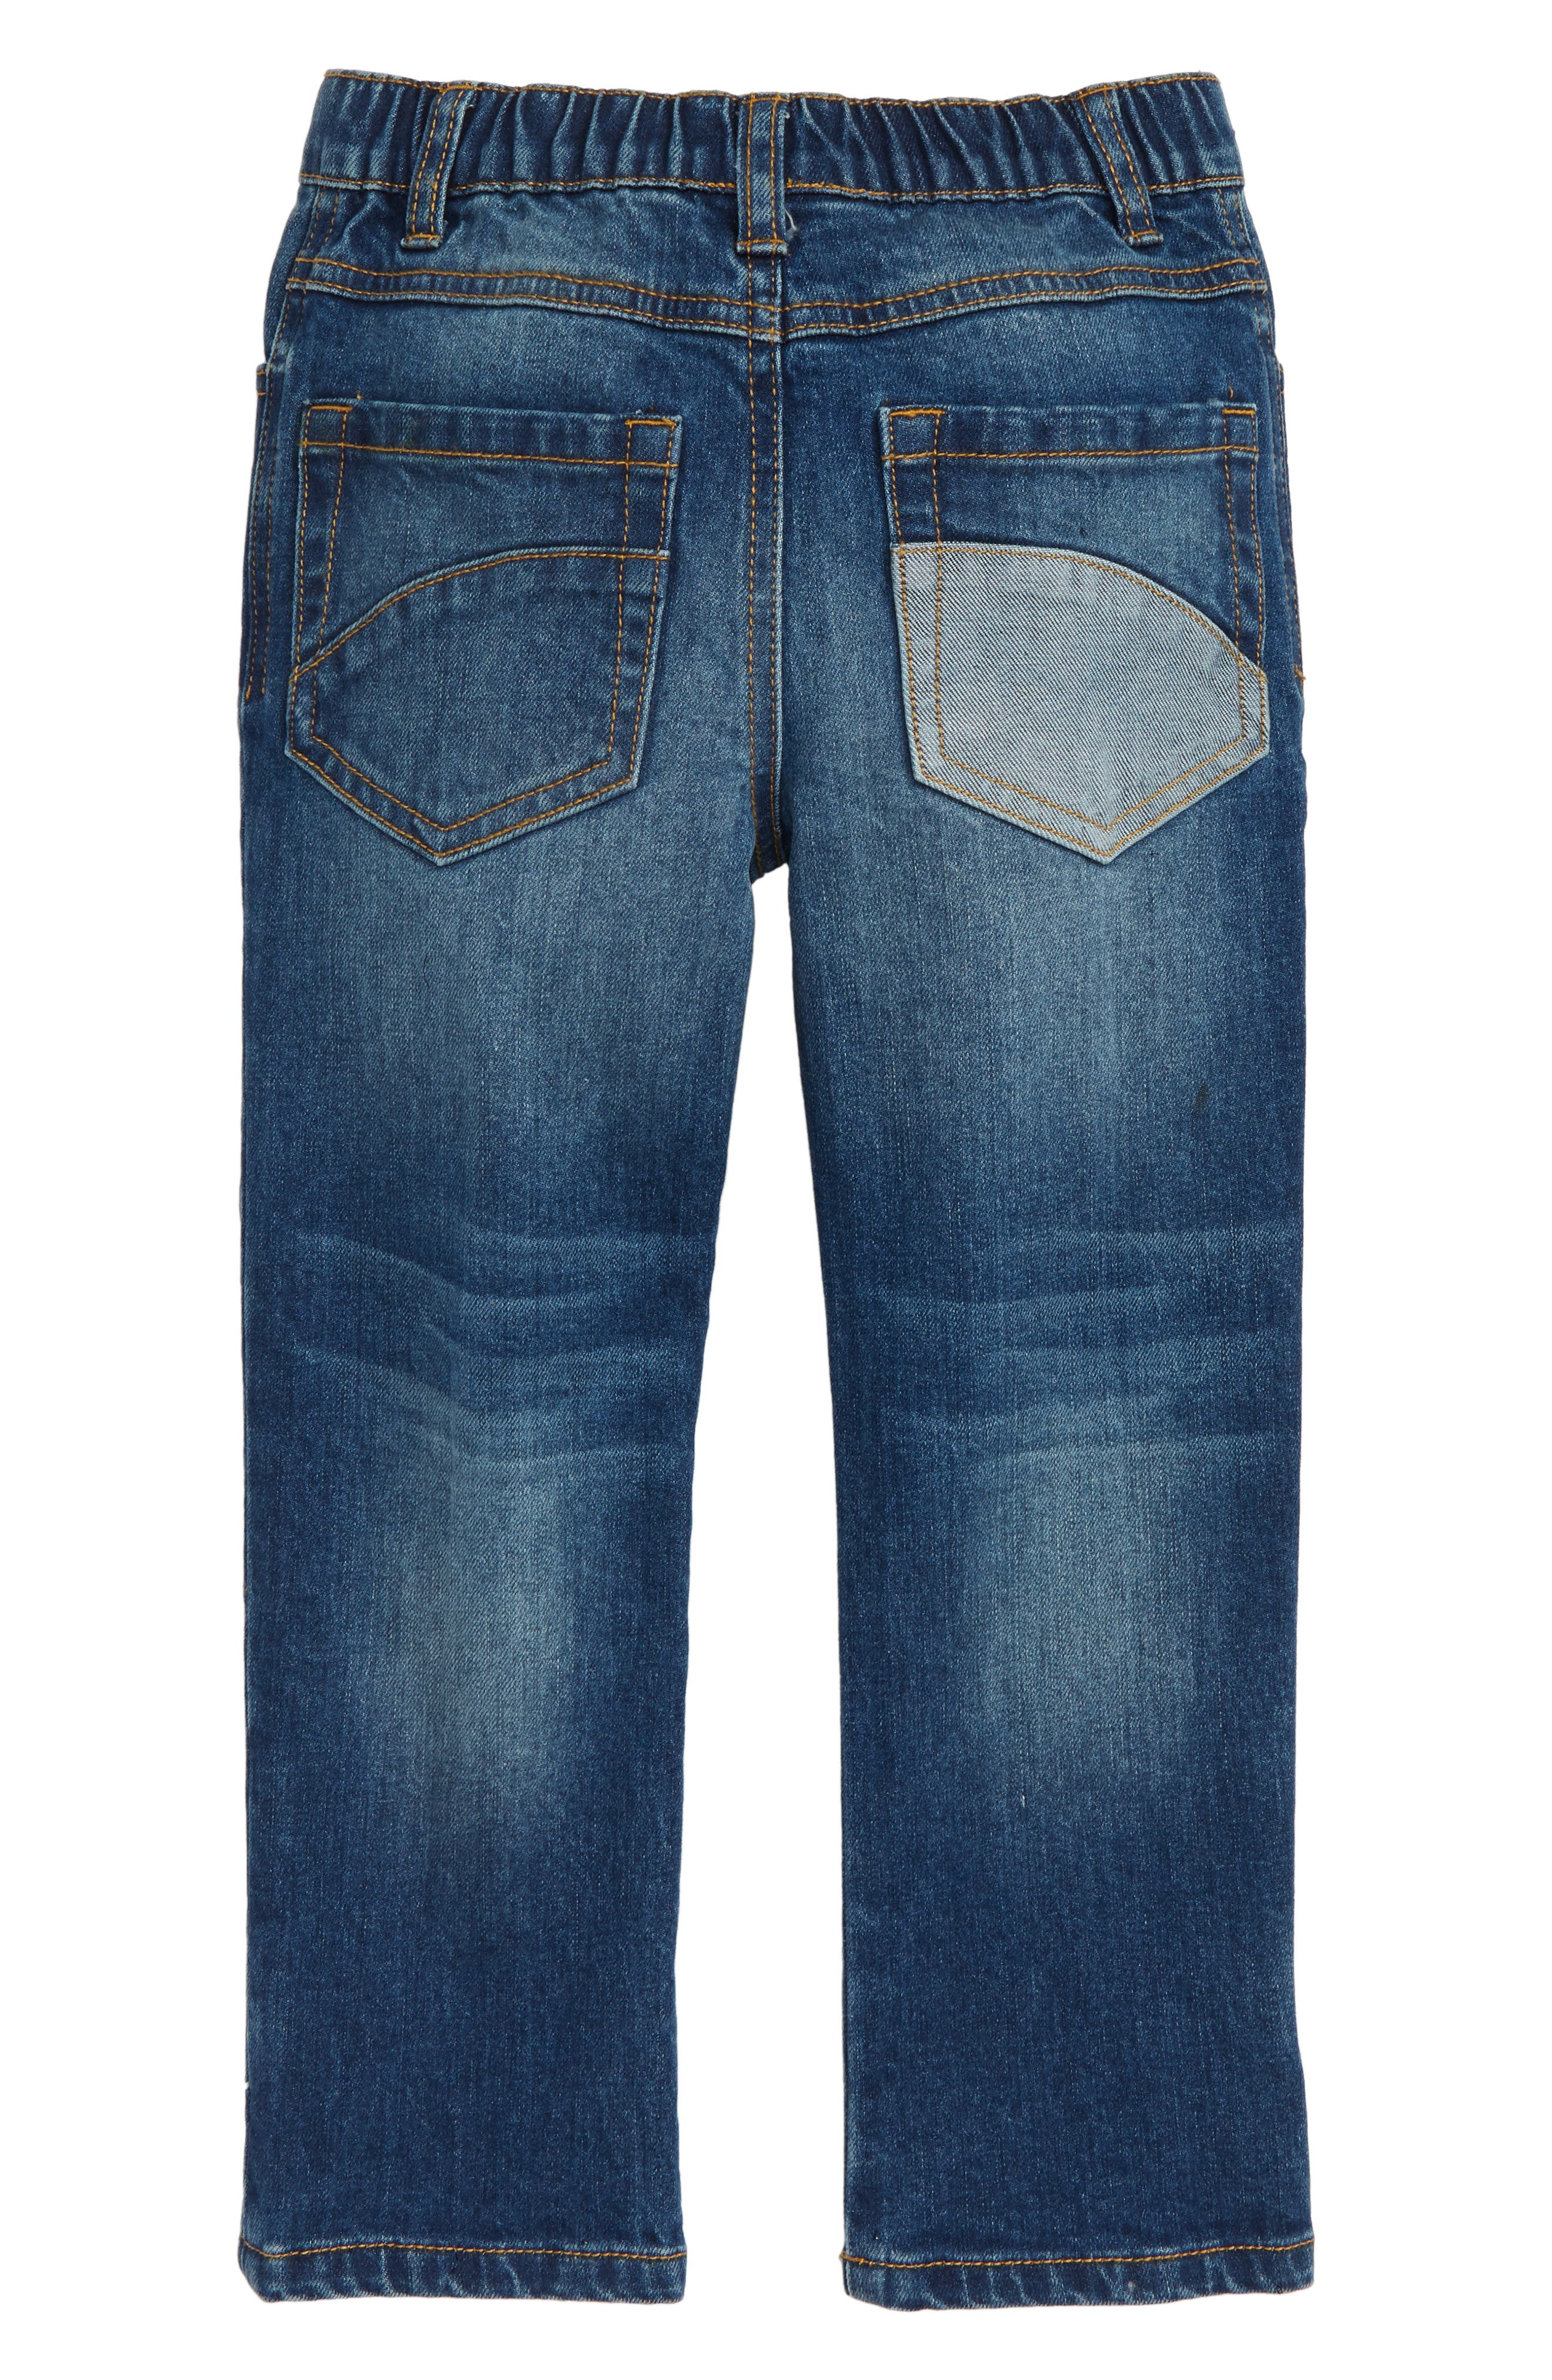 Distressed Jeans,                             Alternate thumbnail 2, color,                             401